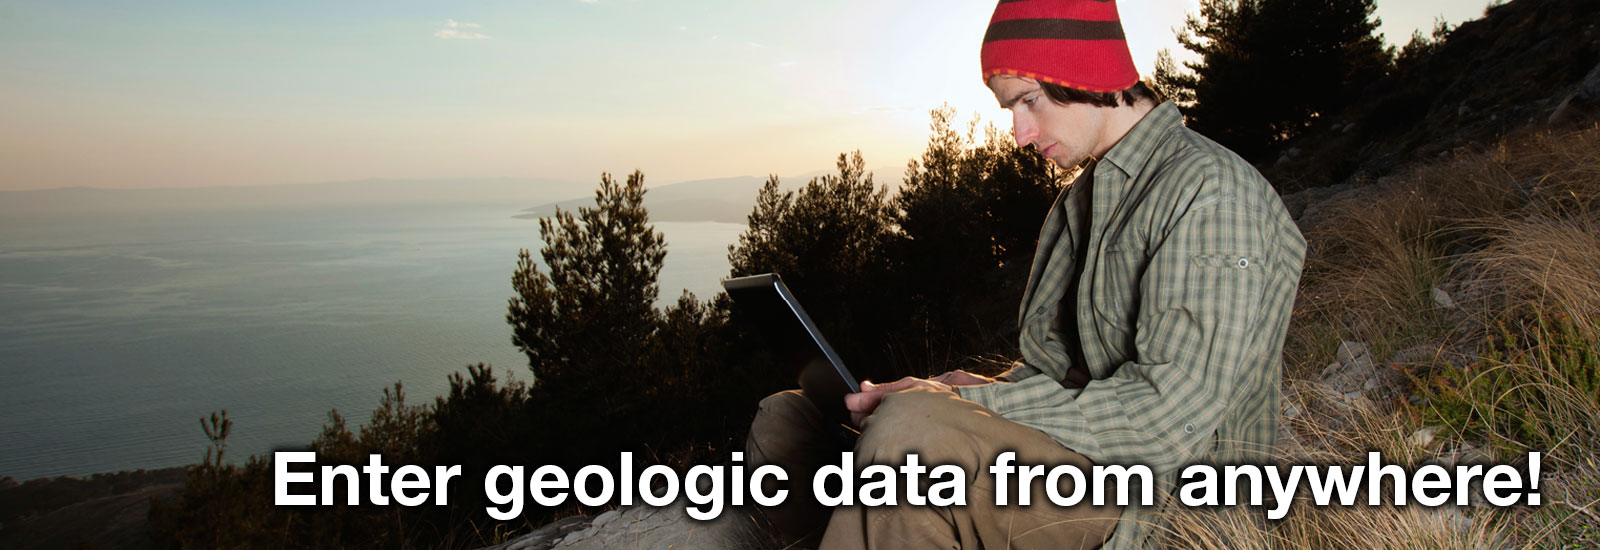 A young geologist enters data into the EDM. Caption: 'Enter geologic data from anywhere'